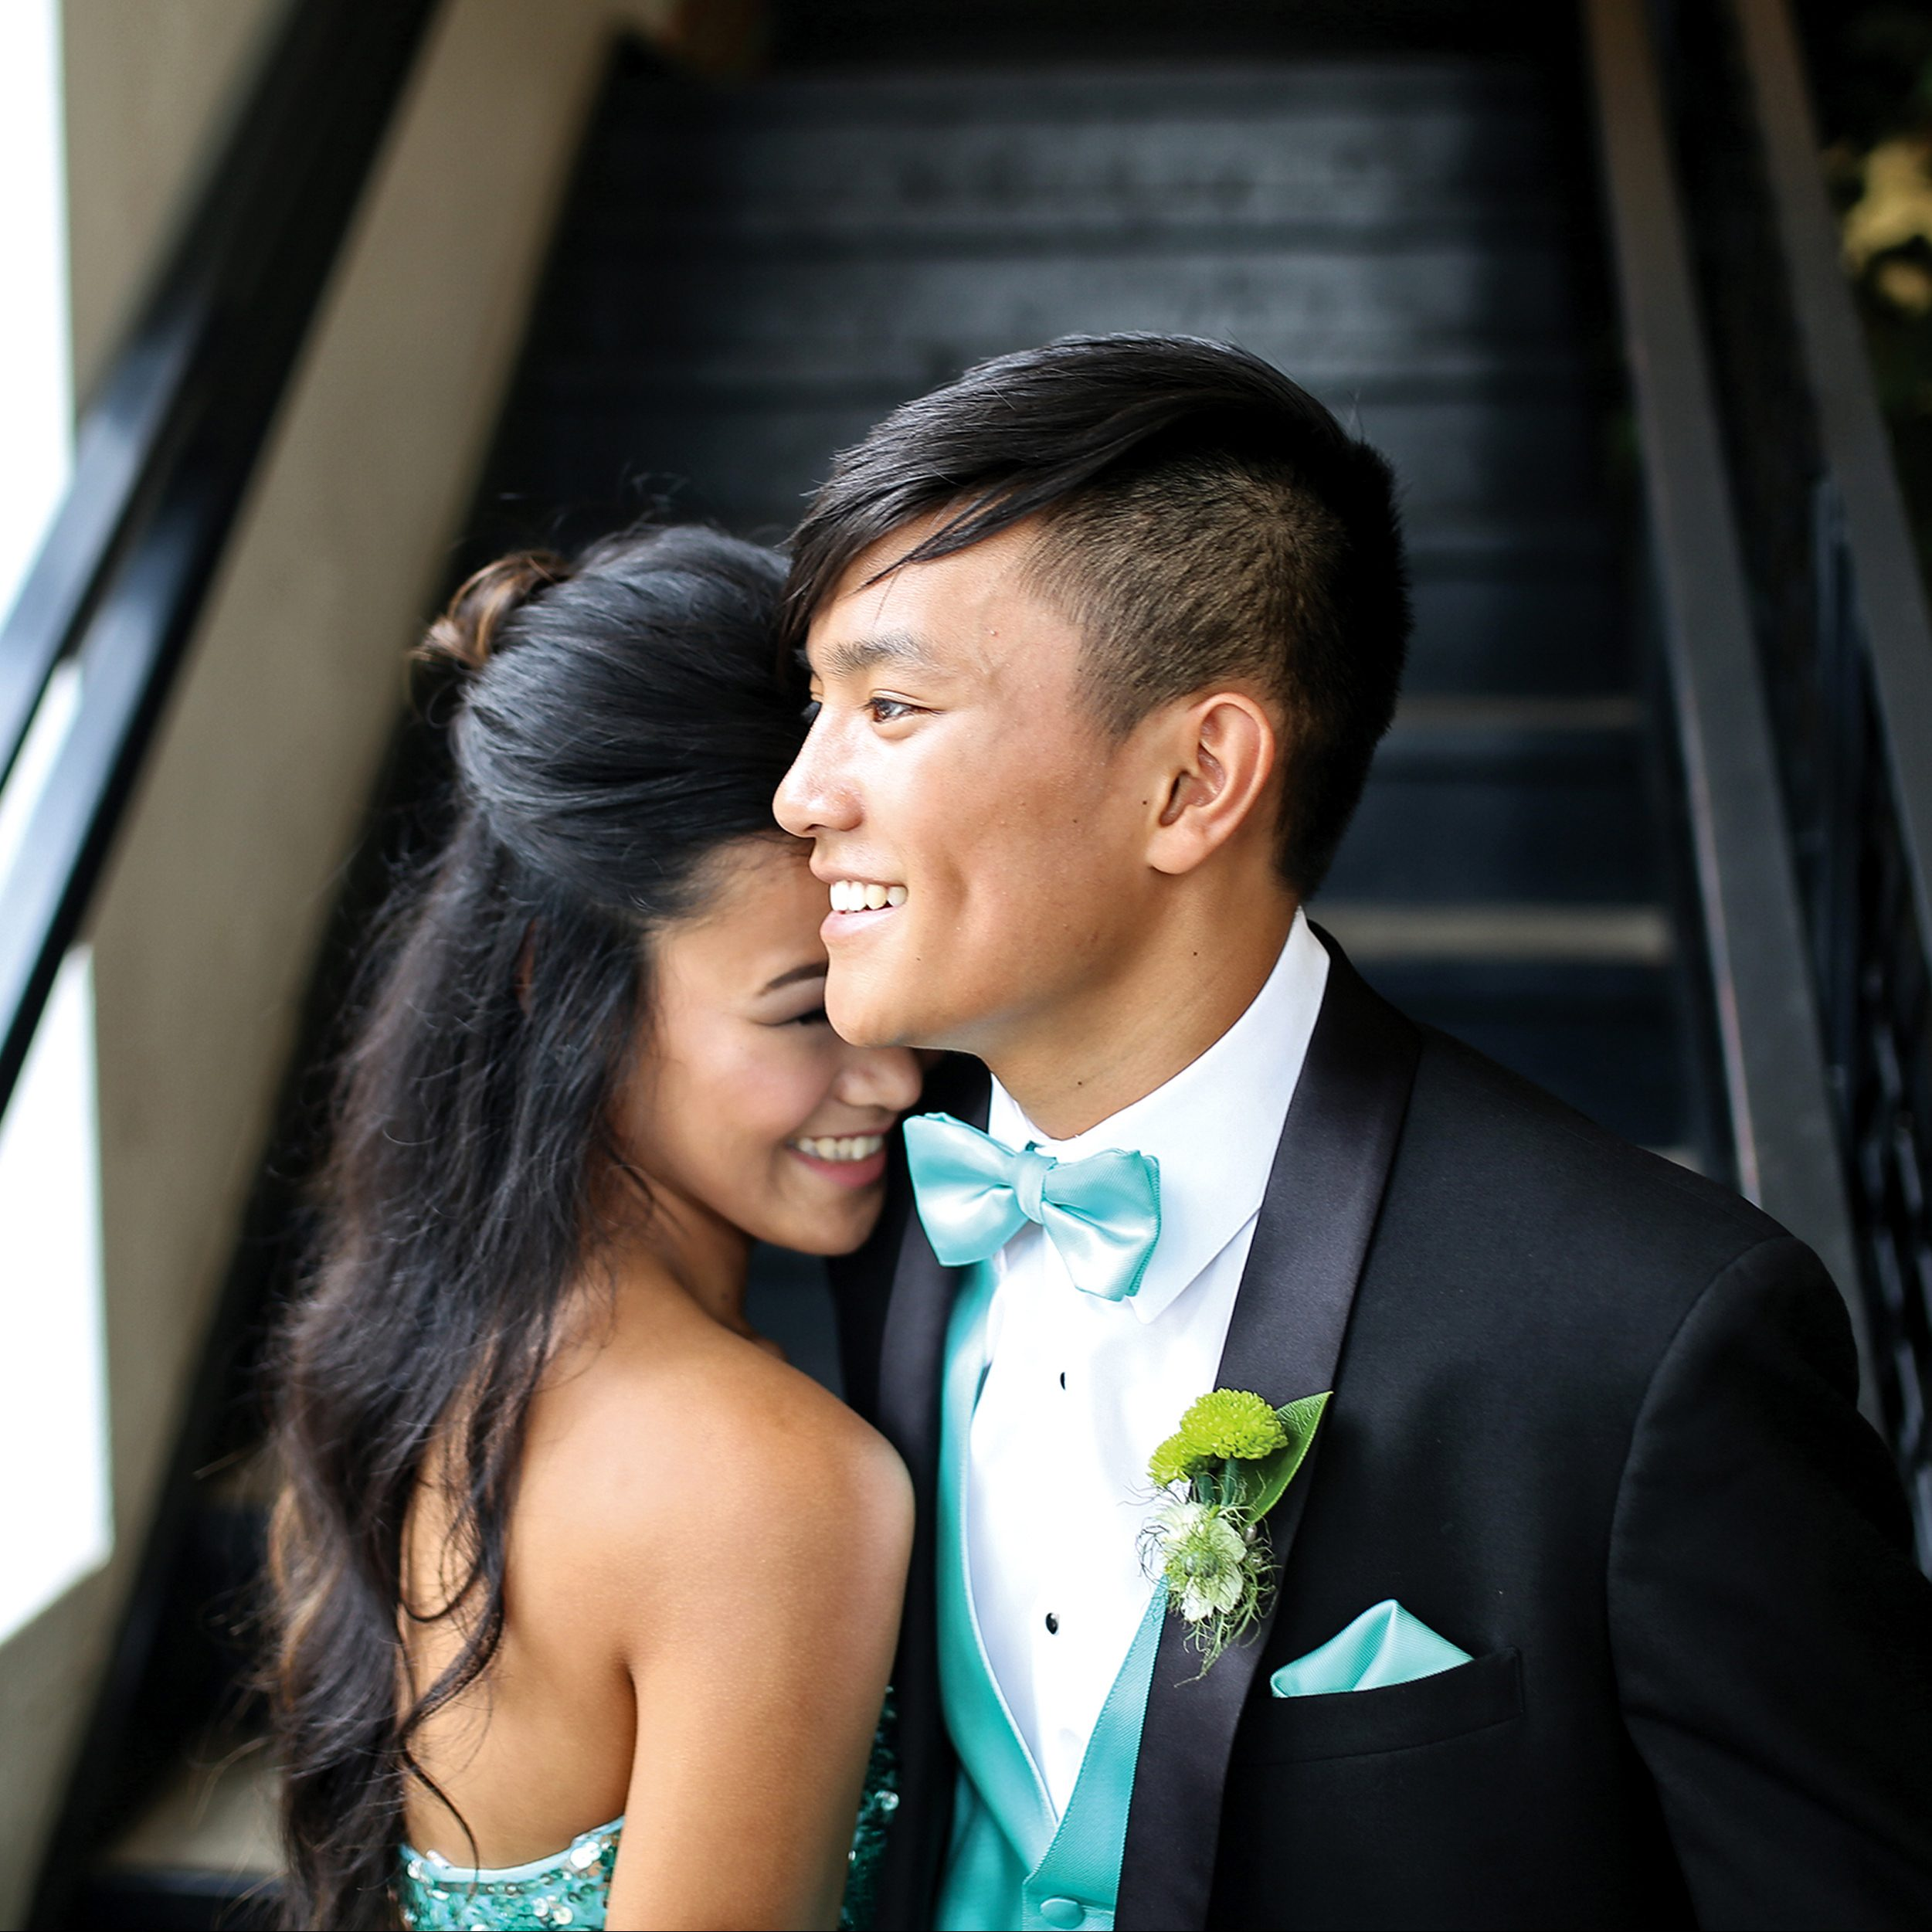 high school male and female wearing black tuxedo and teal dress